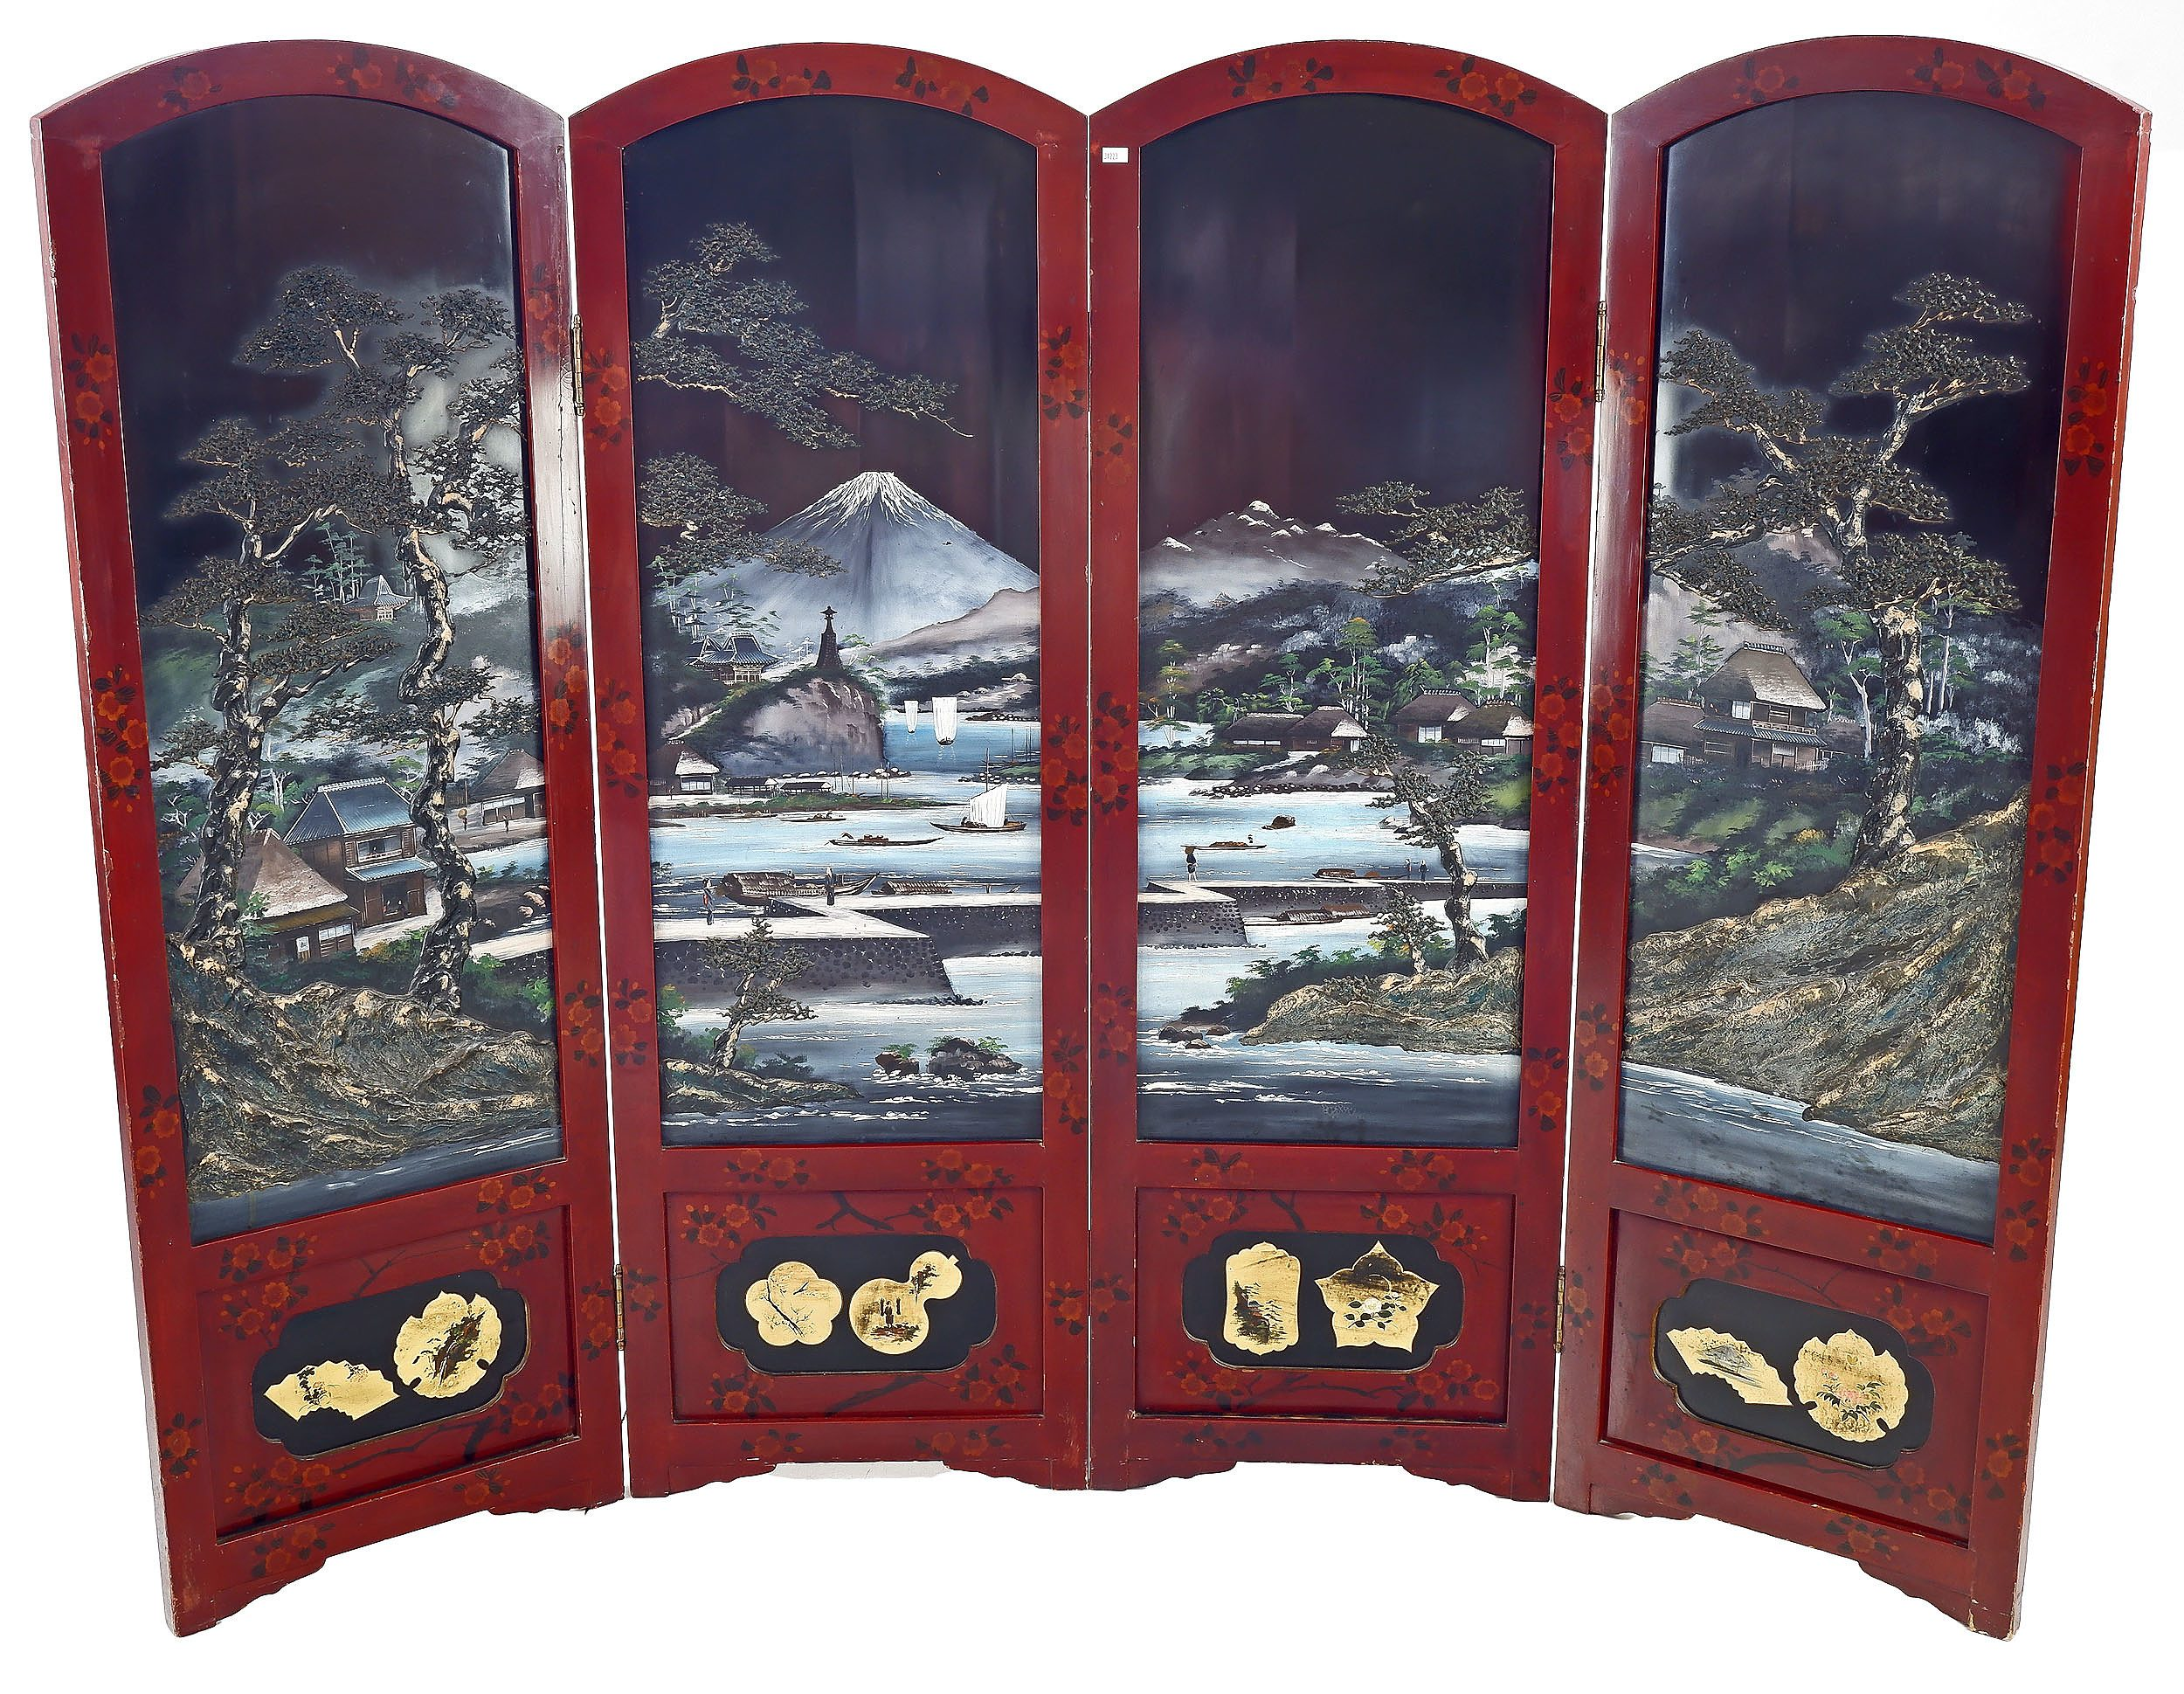 'Good Japanese Red and Black and Polychrome Lacquer Painted Four-fold Floor Screen, Meiji Period 1868-1912'